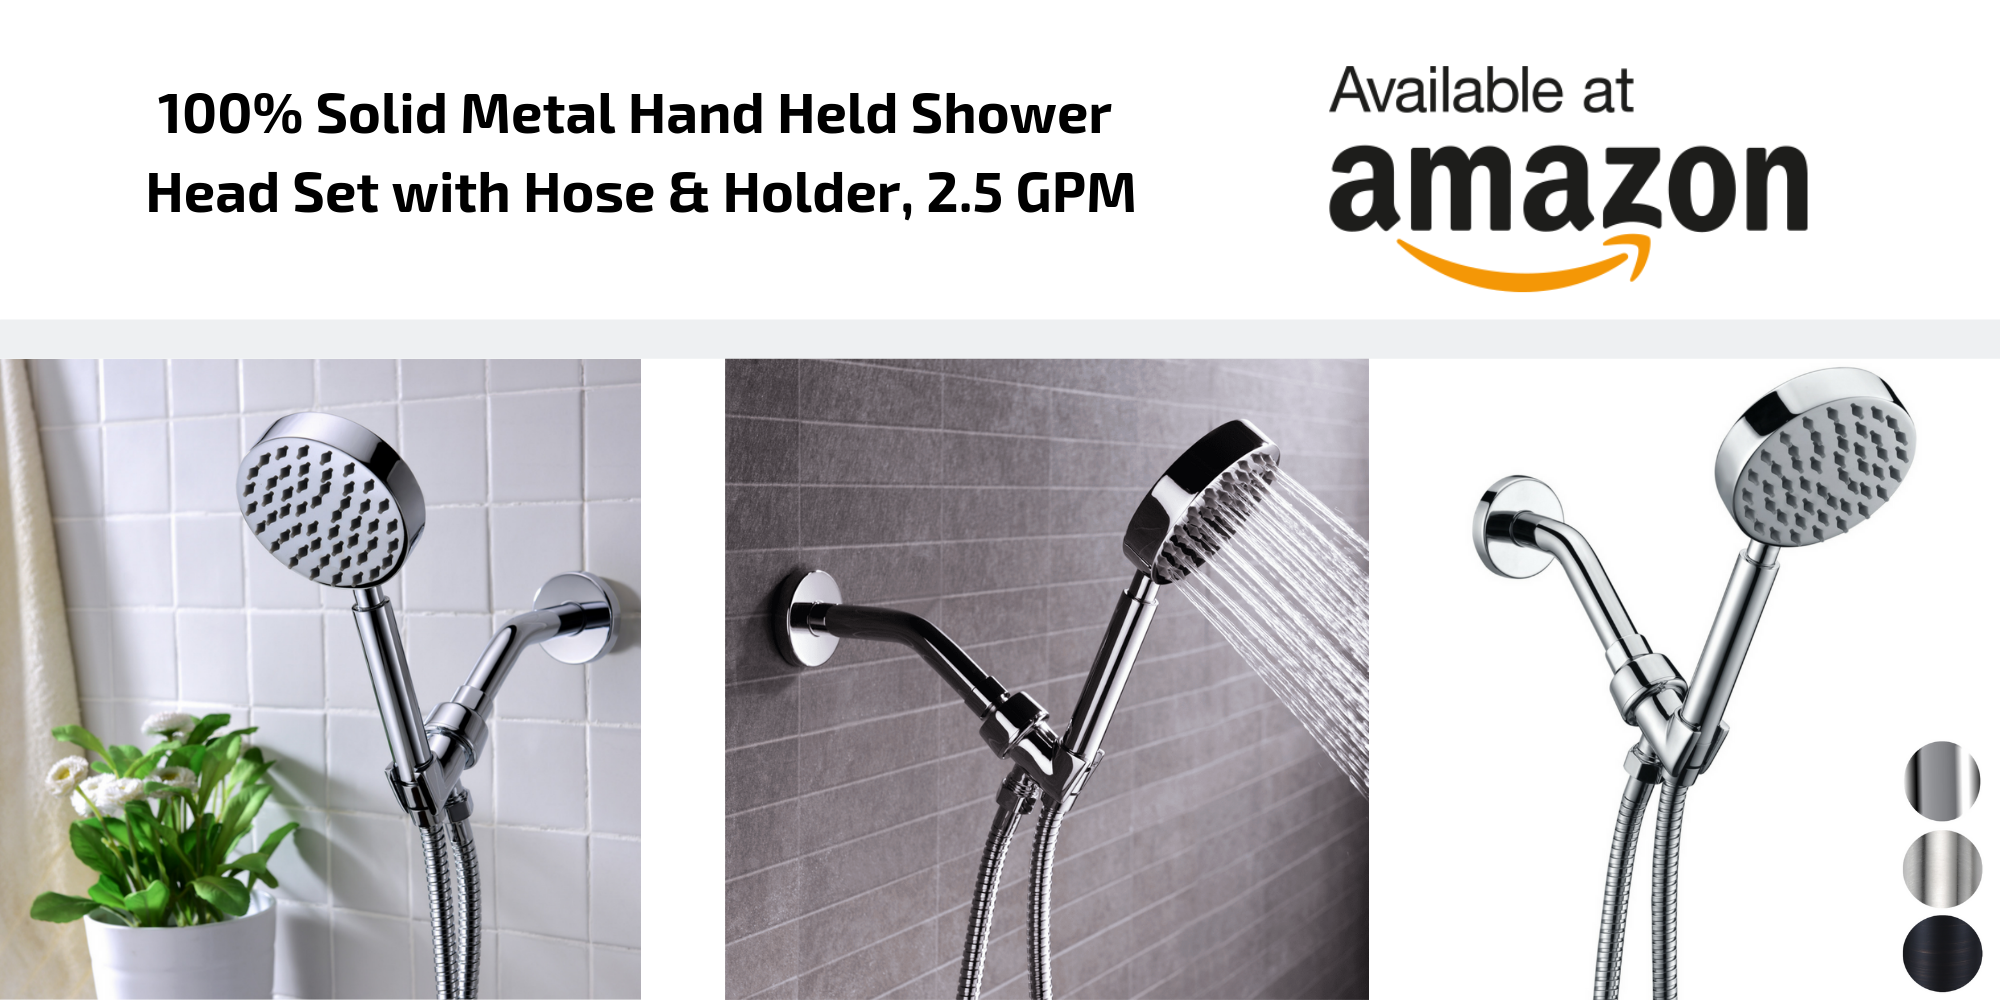 Best Shower Heads Amazon   ALL METAL Shower Heads Built To Last